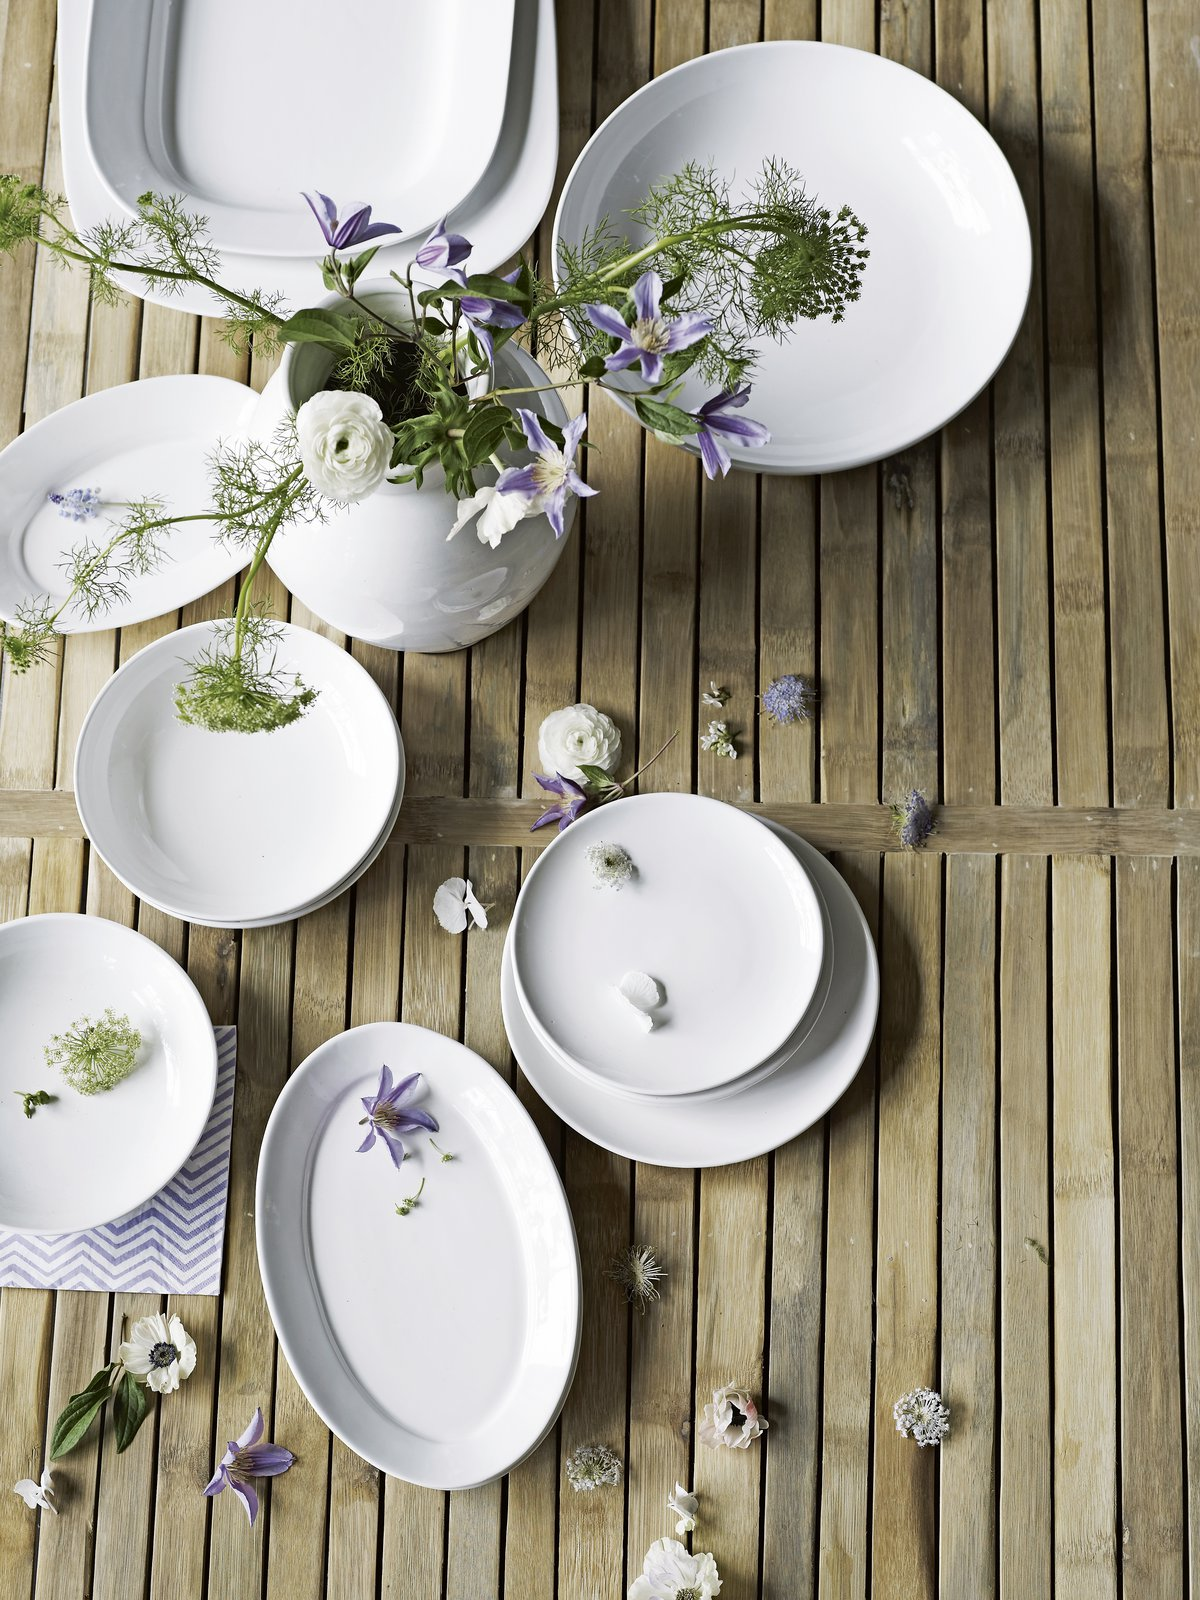 Easter table setting with fresh flowers and white ceramic - bring Spring to your Easter table